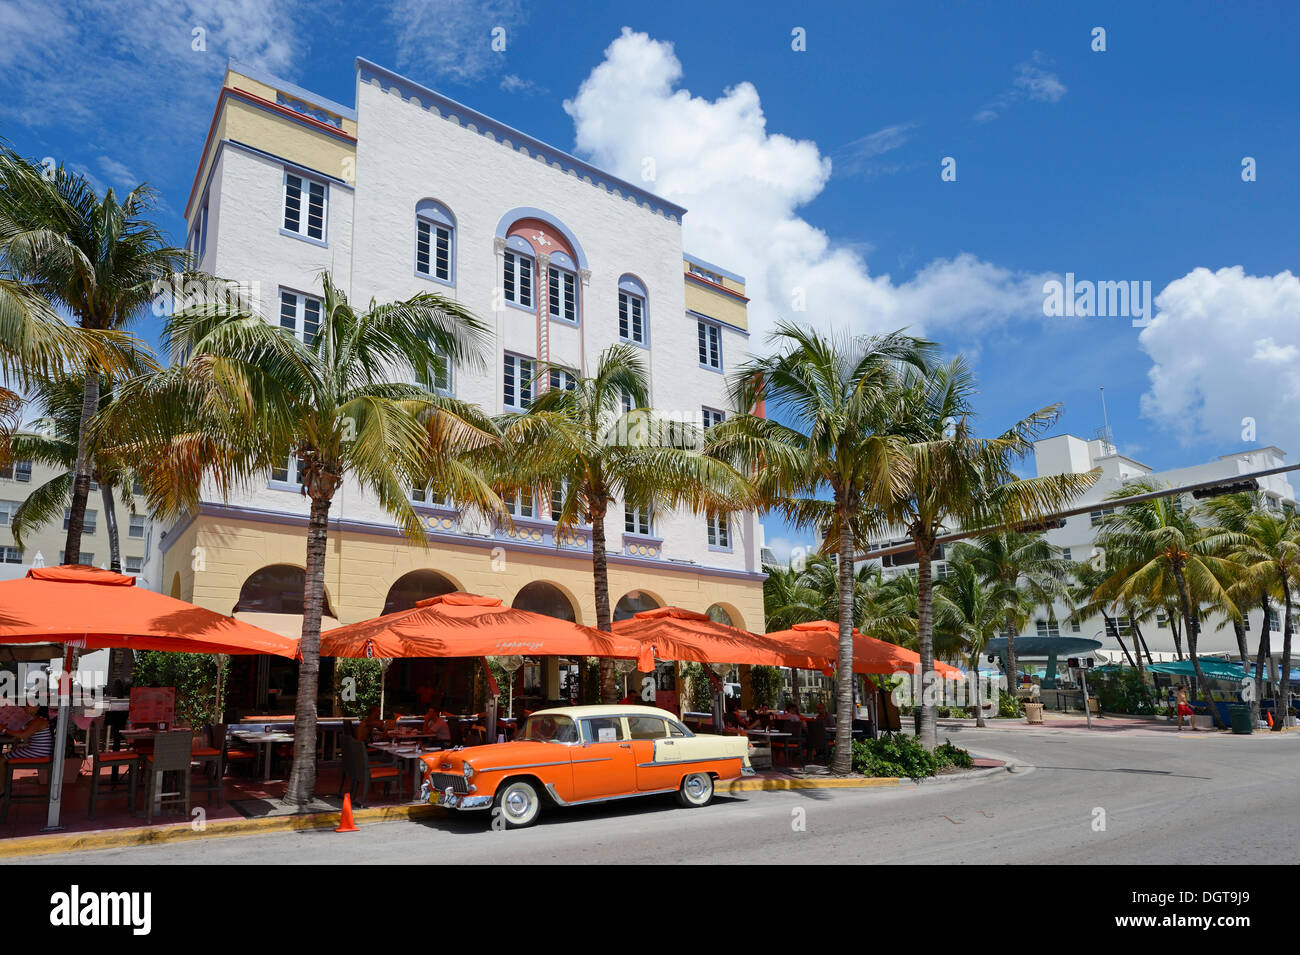 A classic car parked on Ocean Drive, South Beach, Miami, Florida, USA - Stock Image